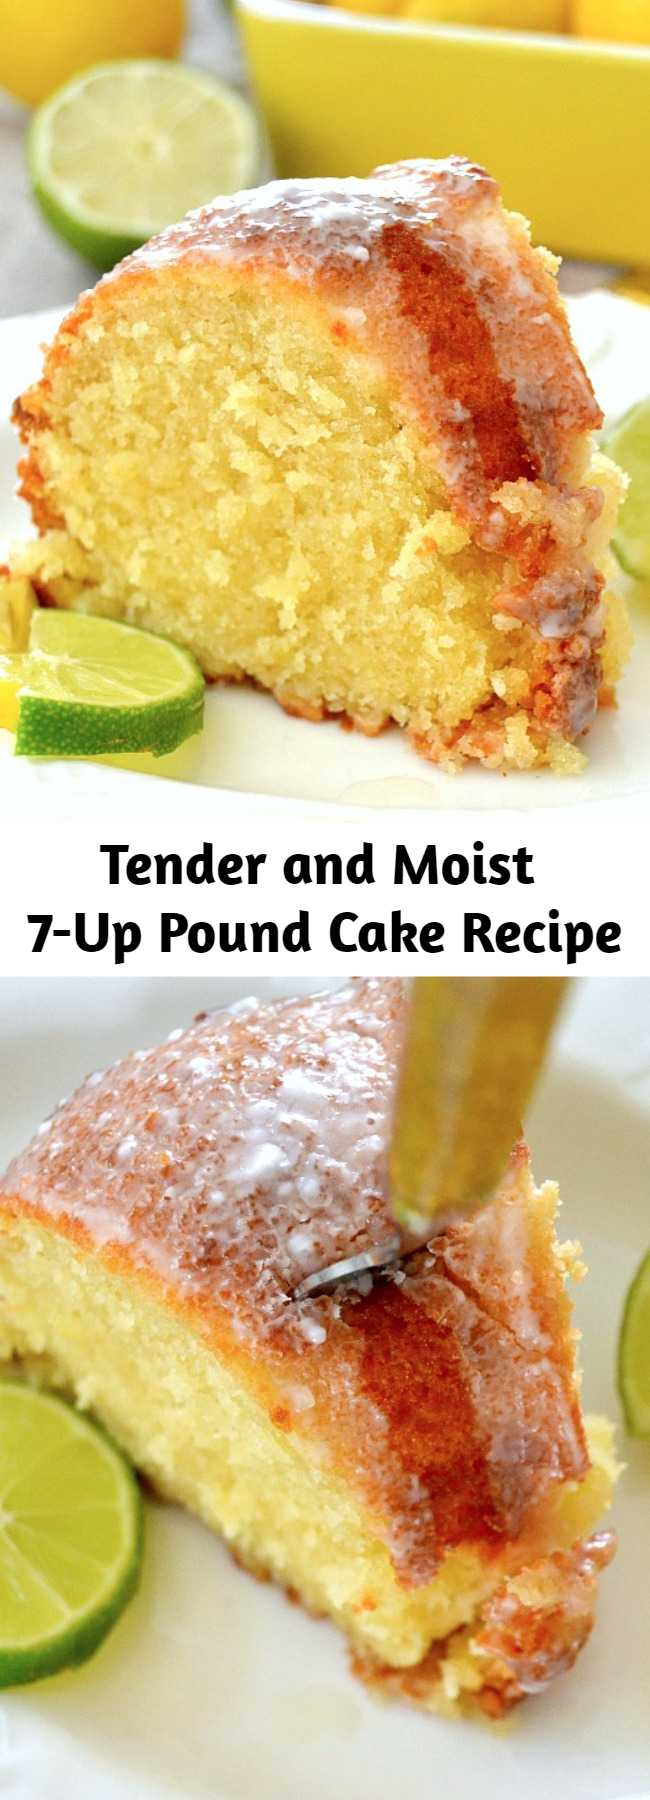 Tender and Moist 7-Up Pound Cake Recipe - This cake is AMAZING... The flavor is so out of control awesome and the cake itself is dense, tender and moist. It's buttery, sweet, and citrusy thanks to the zip from lemons and limes.